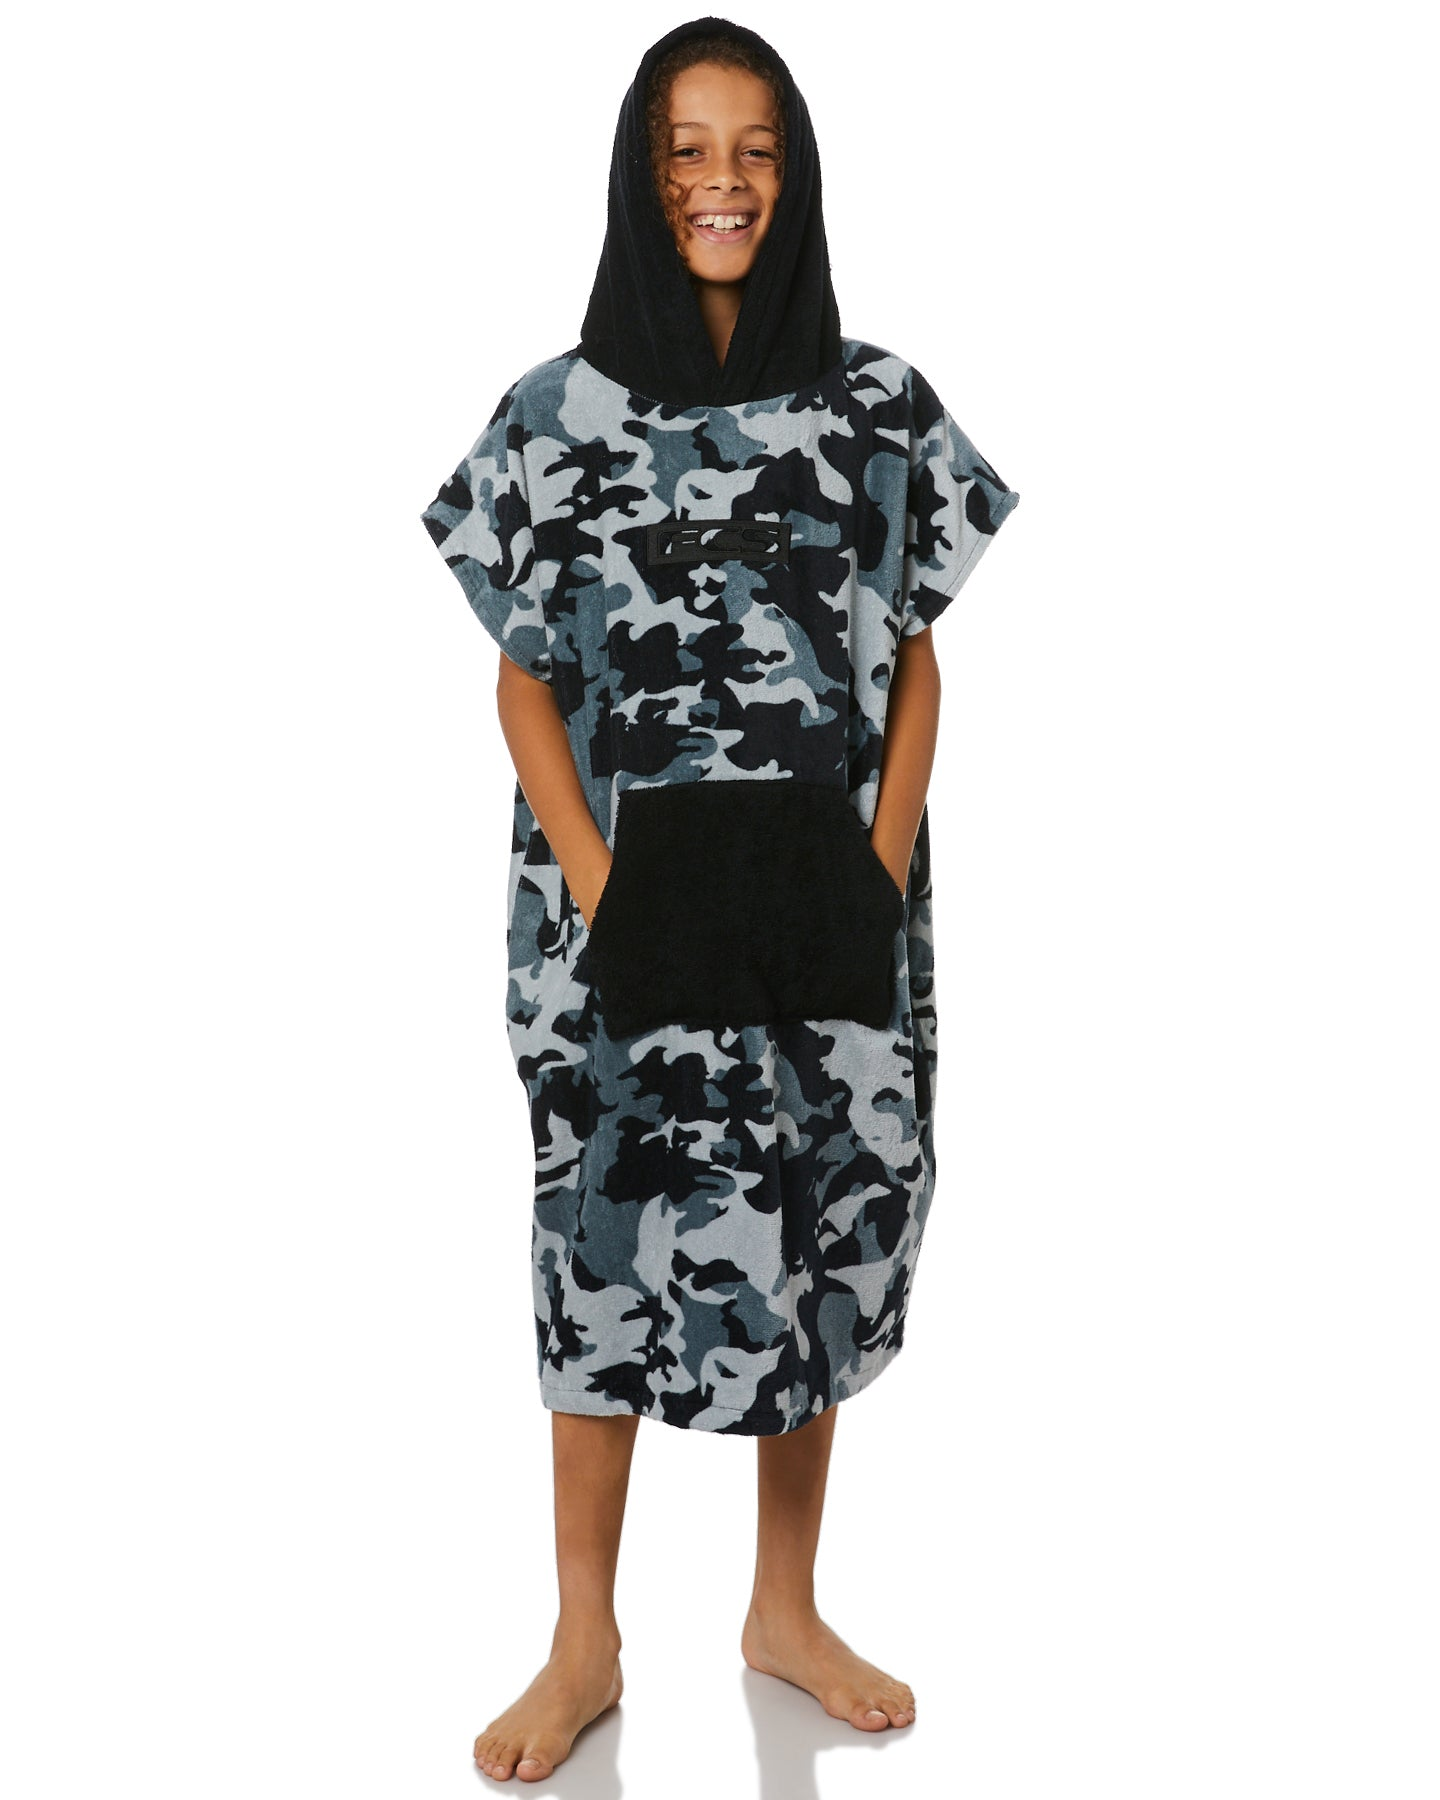 FCS Towel Poncho - Grey Camo/Black